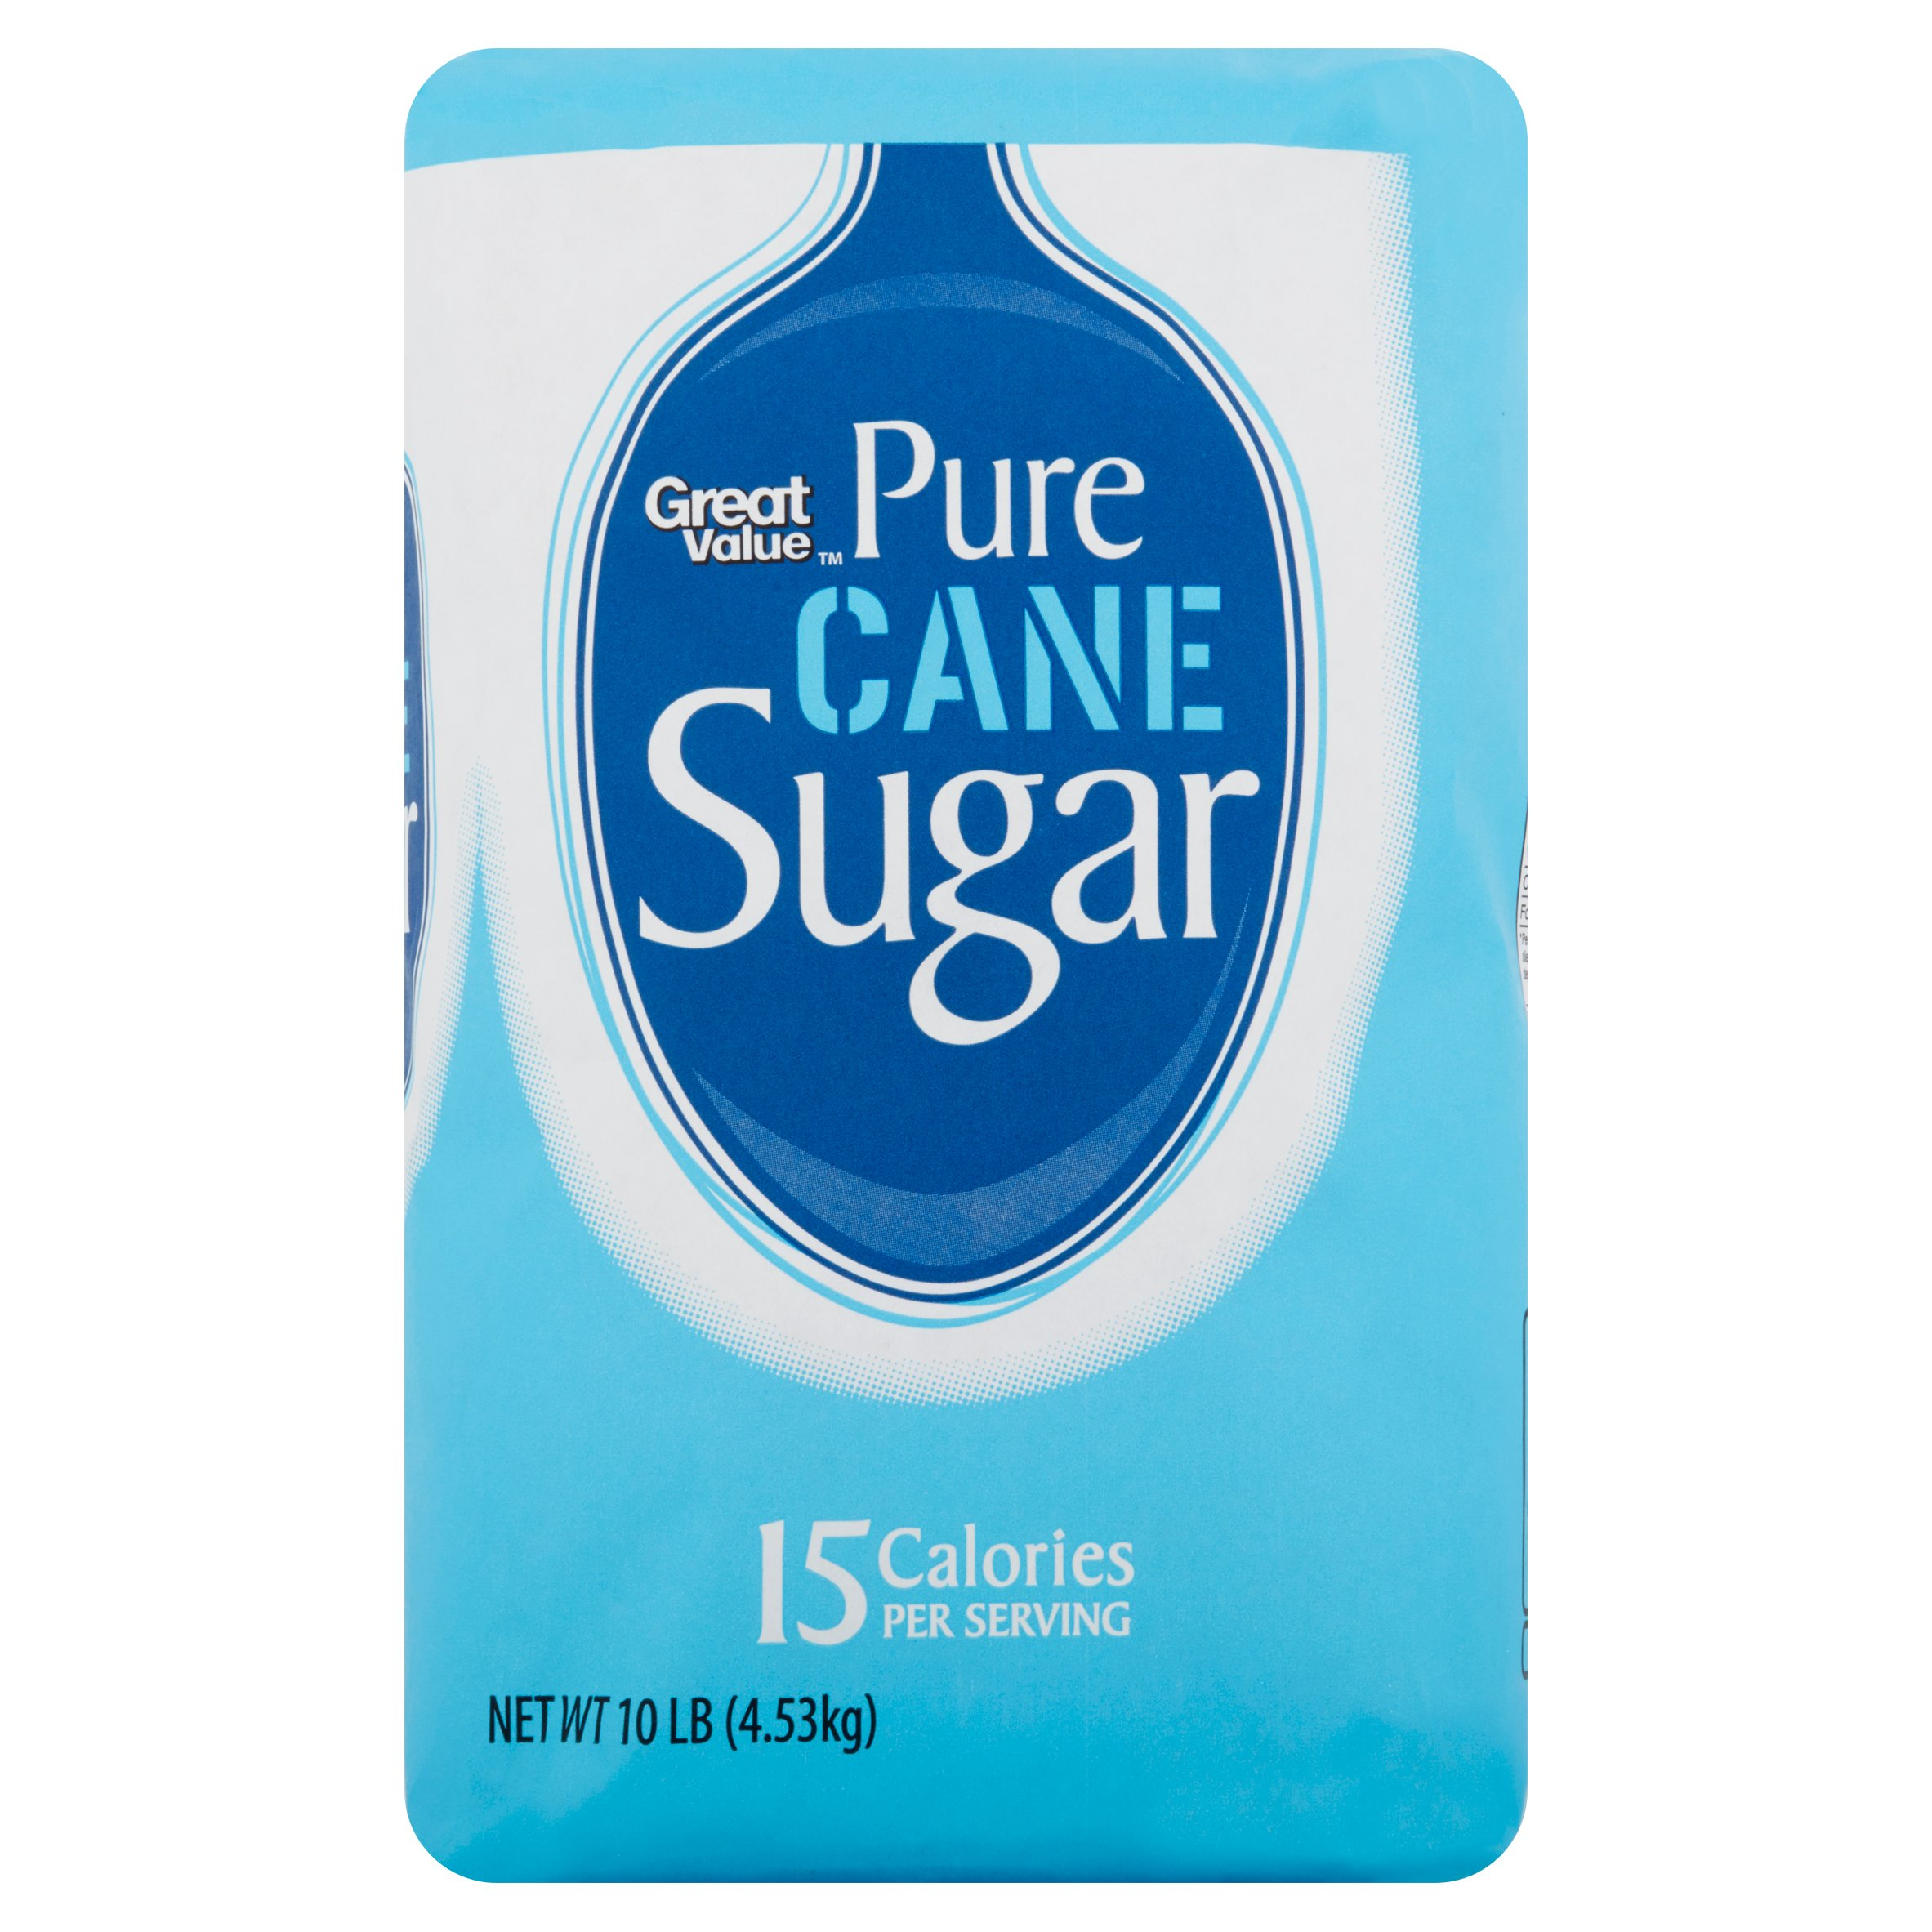 Great Value Pure Cane Sugar, 10 lb by Wal-Mart Stores, Inc.